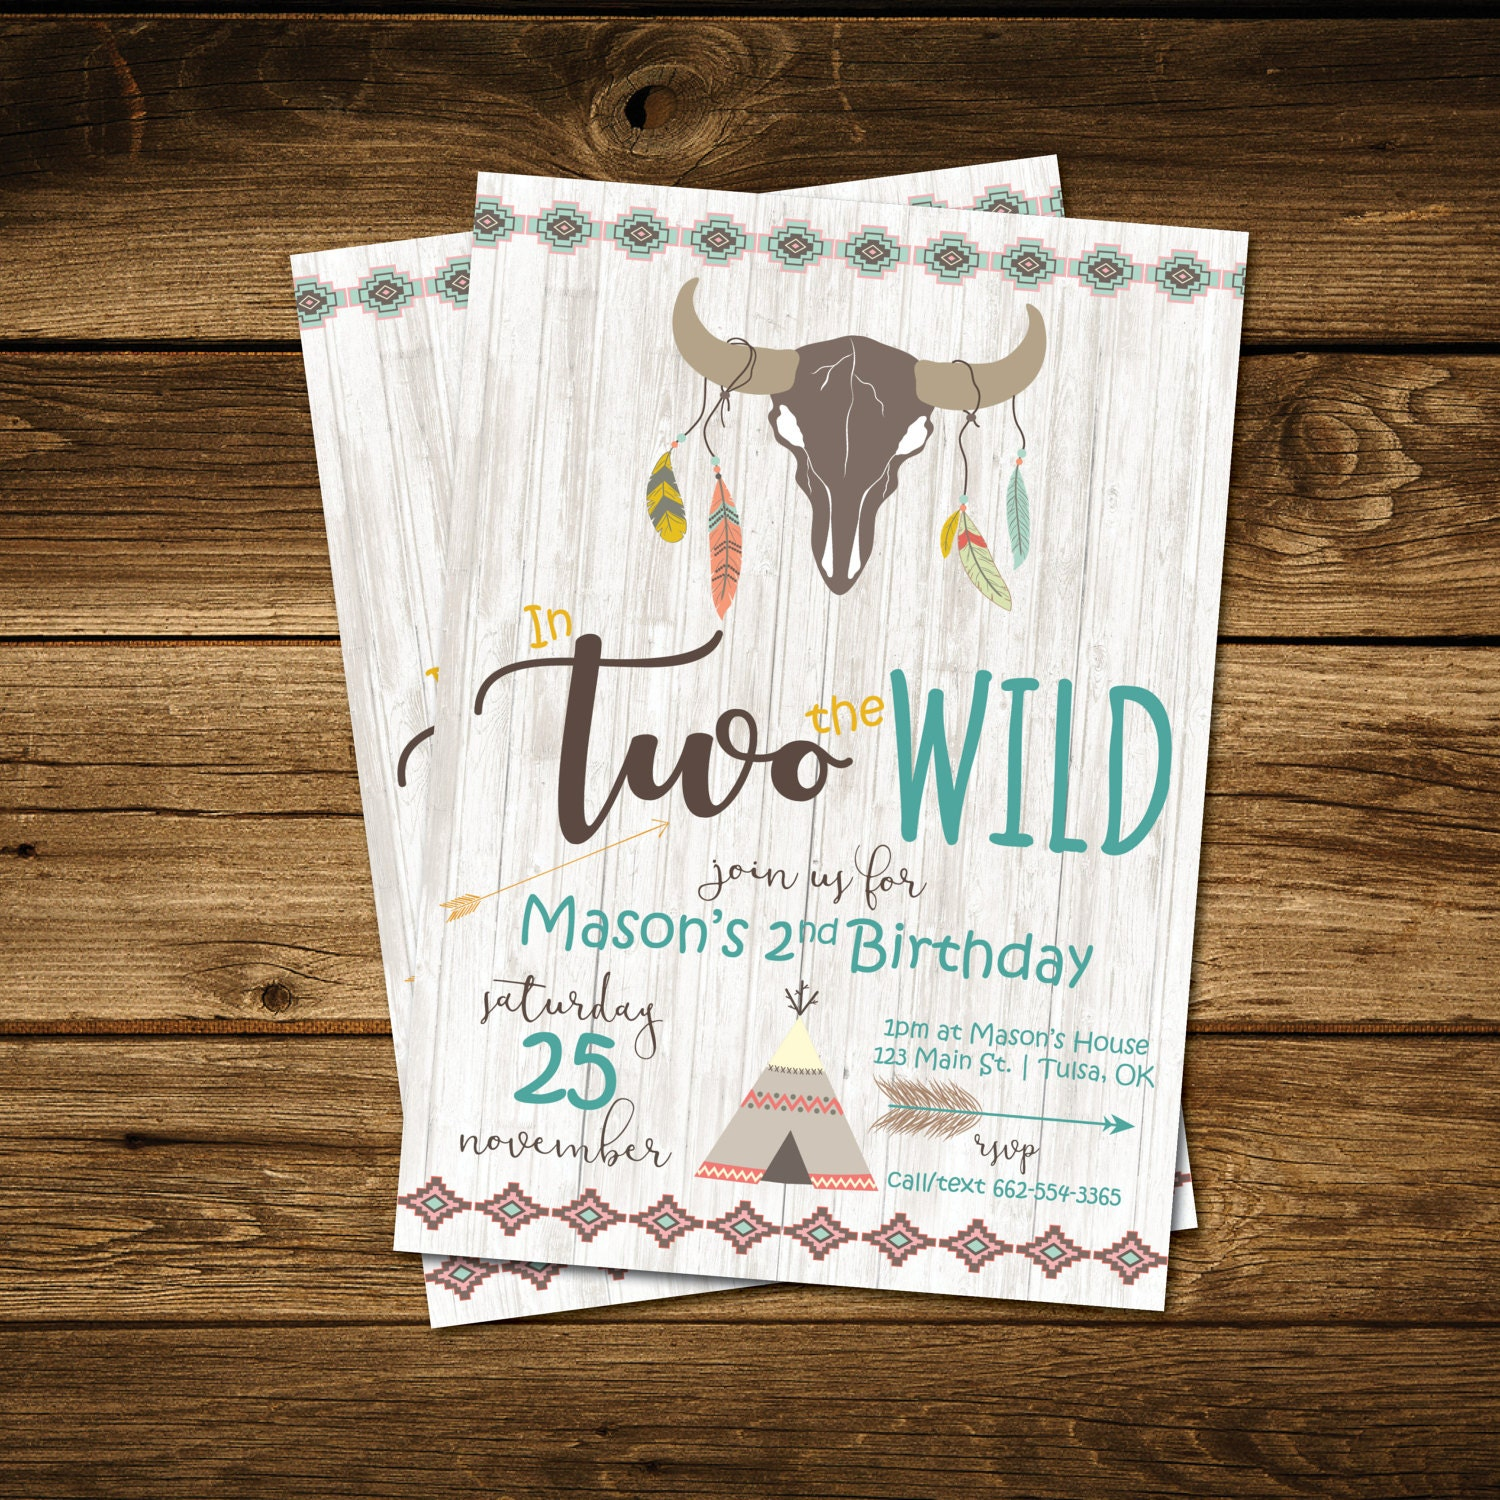 In TWO The Wild Birthday Invitation